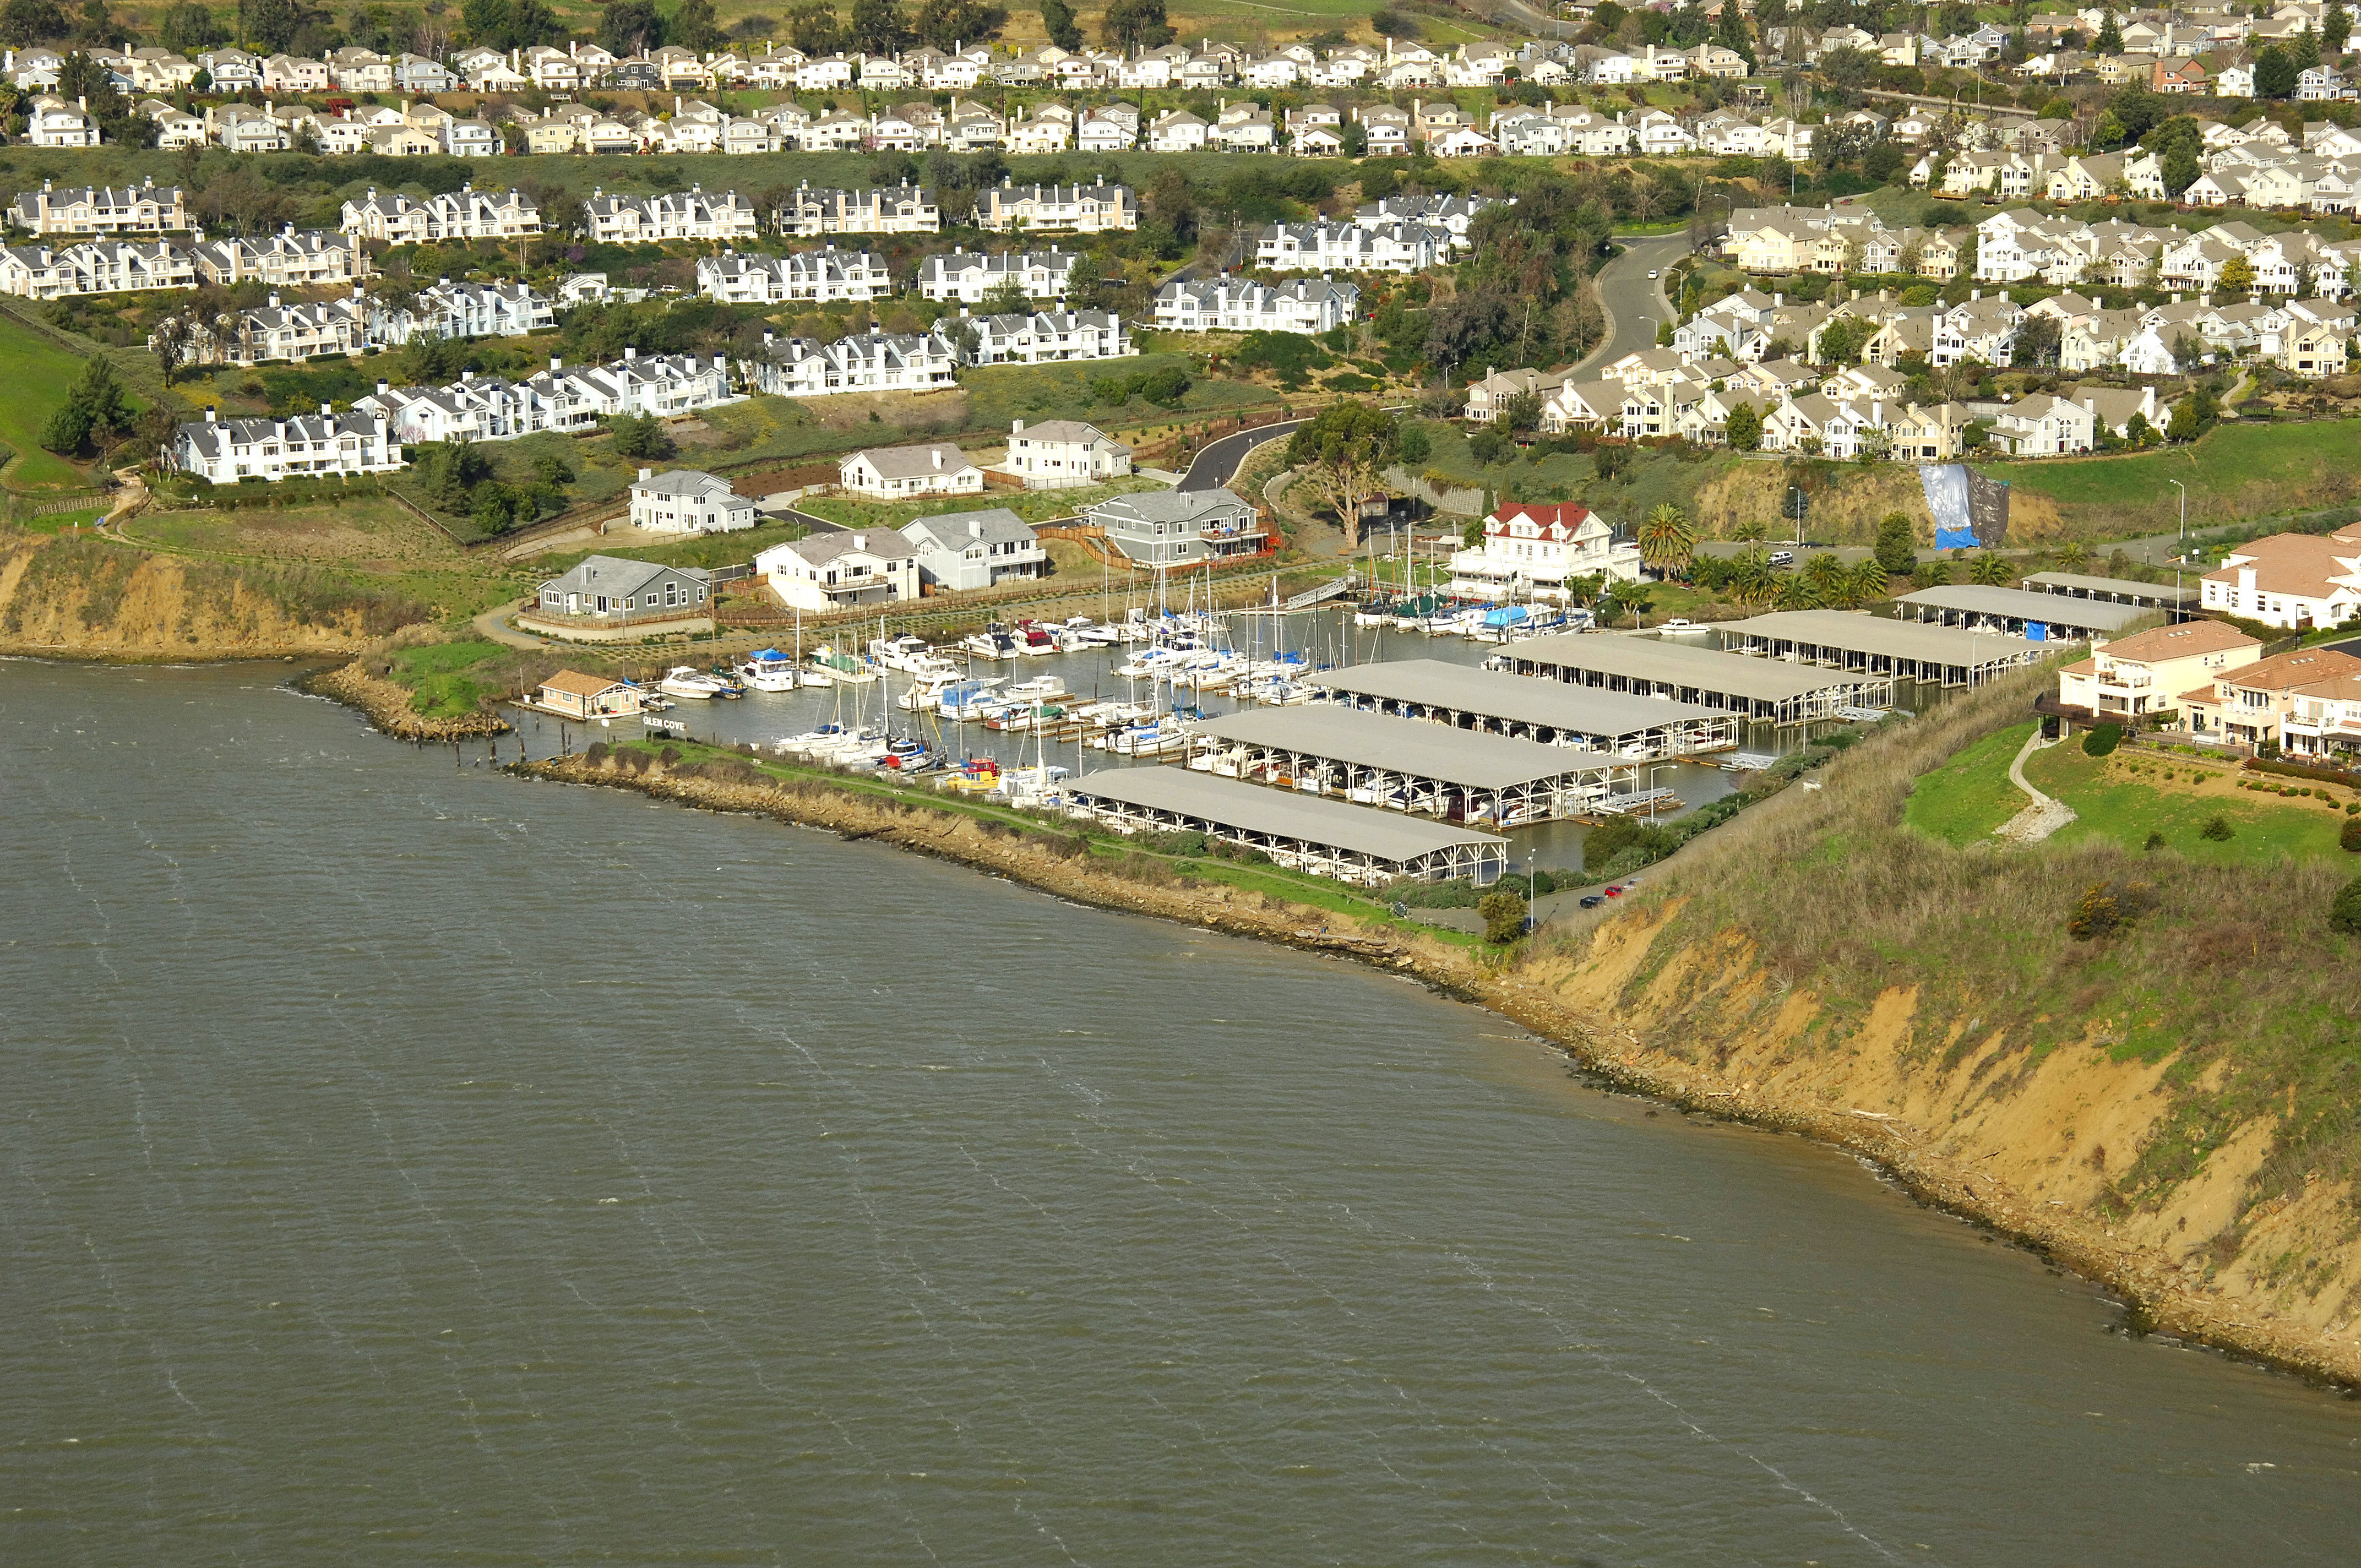 glen cove Search 44 rental properties in glen cove, new york find glen cove apartments, condos, town homes, single family homes and much more on trulia.